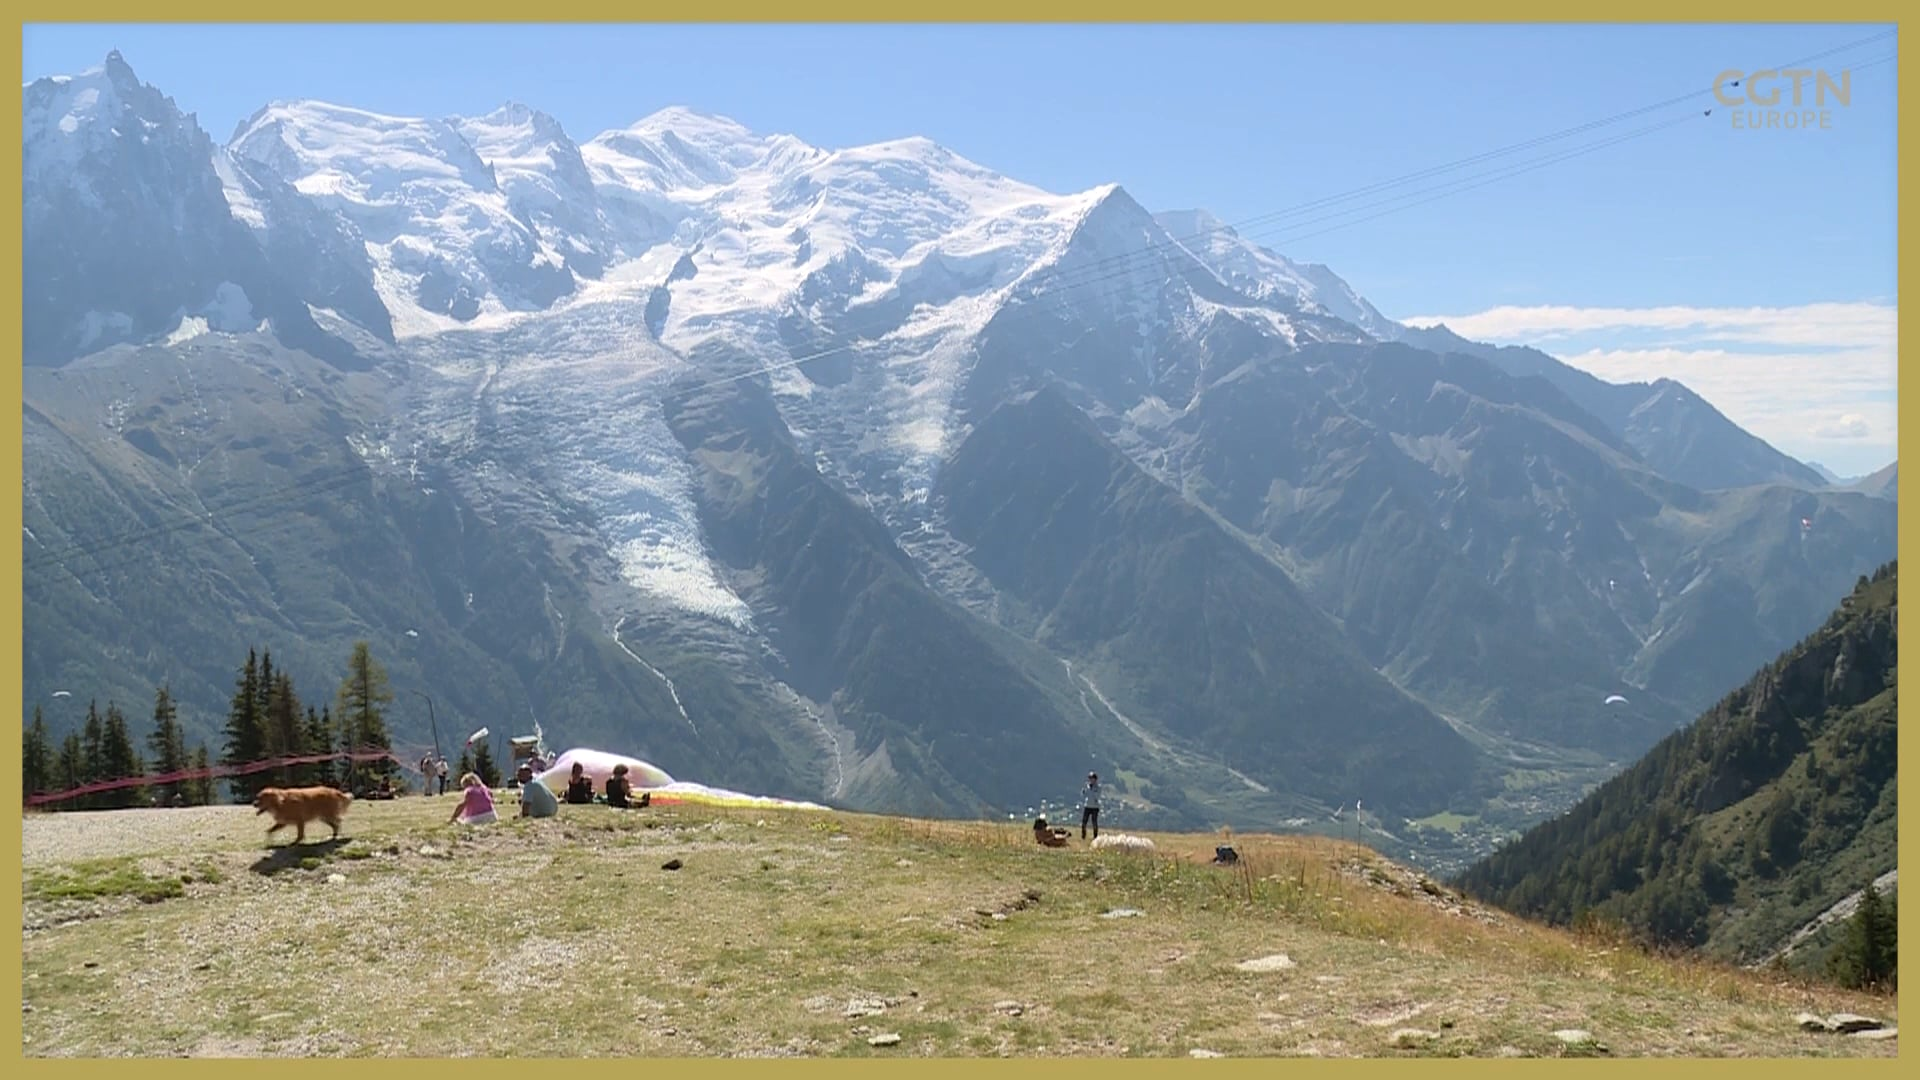 Impact of tourism in the French Alps